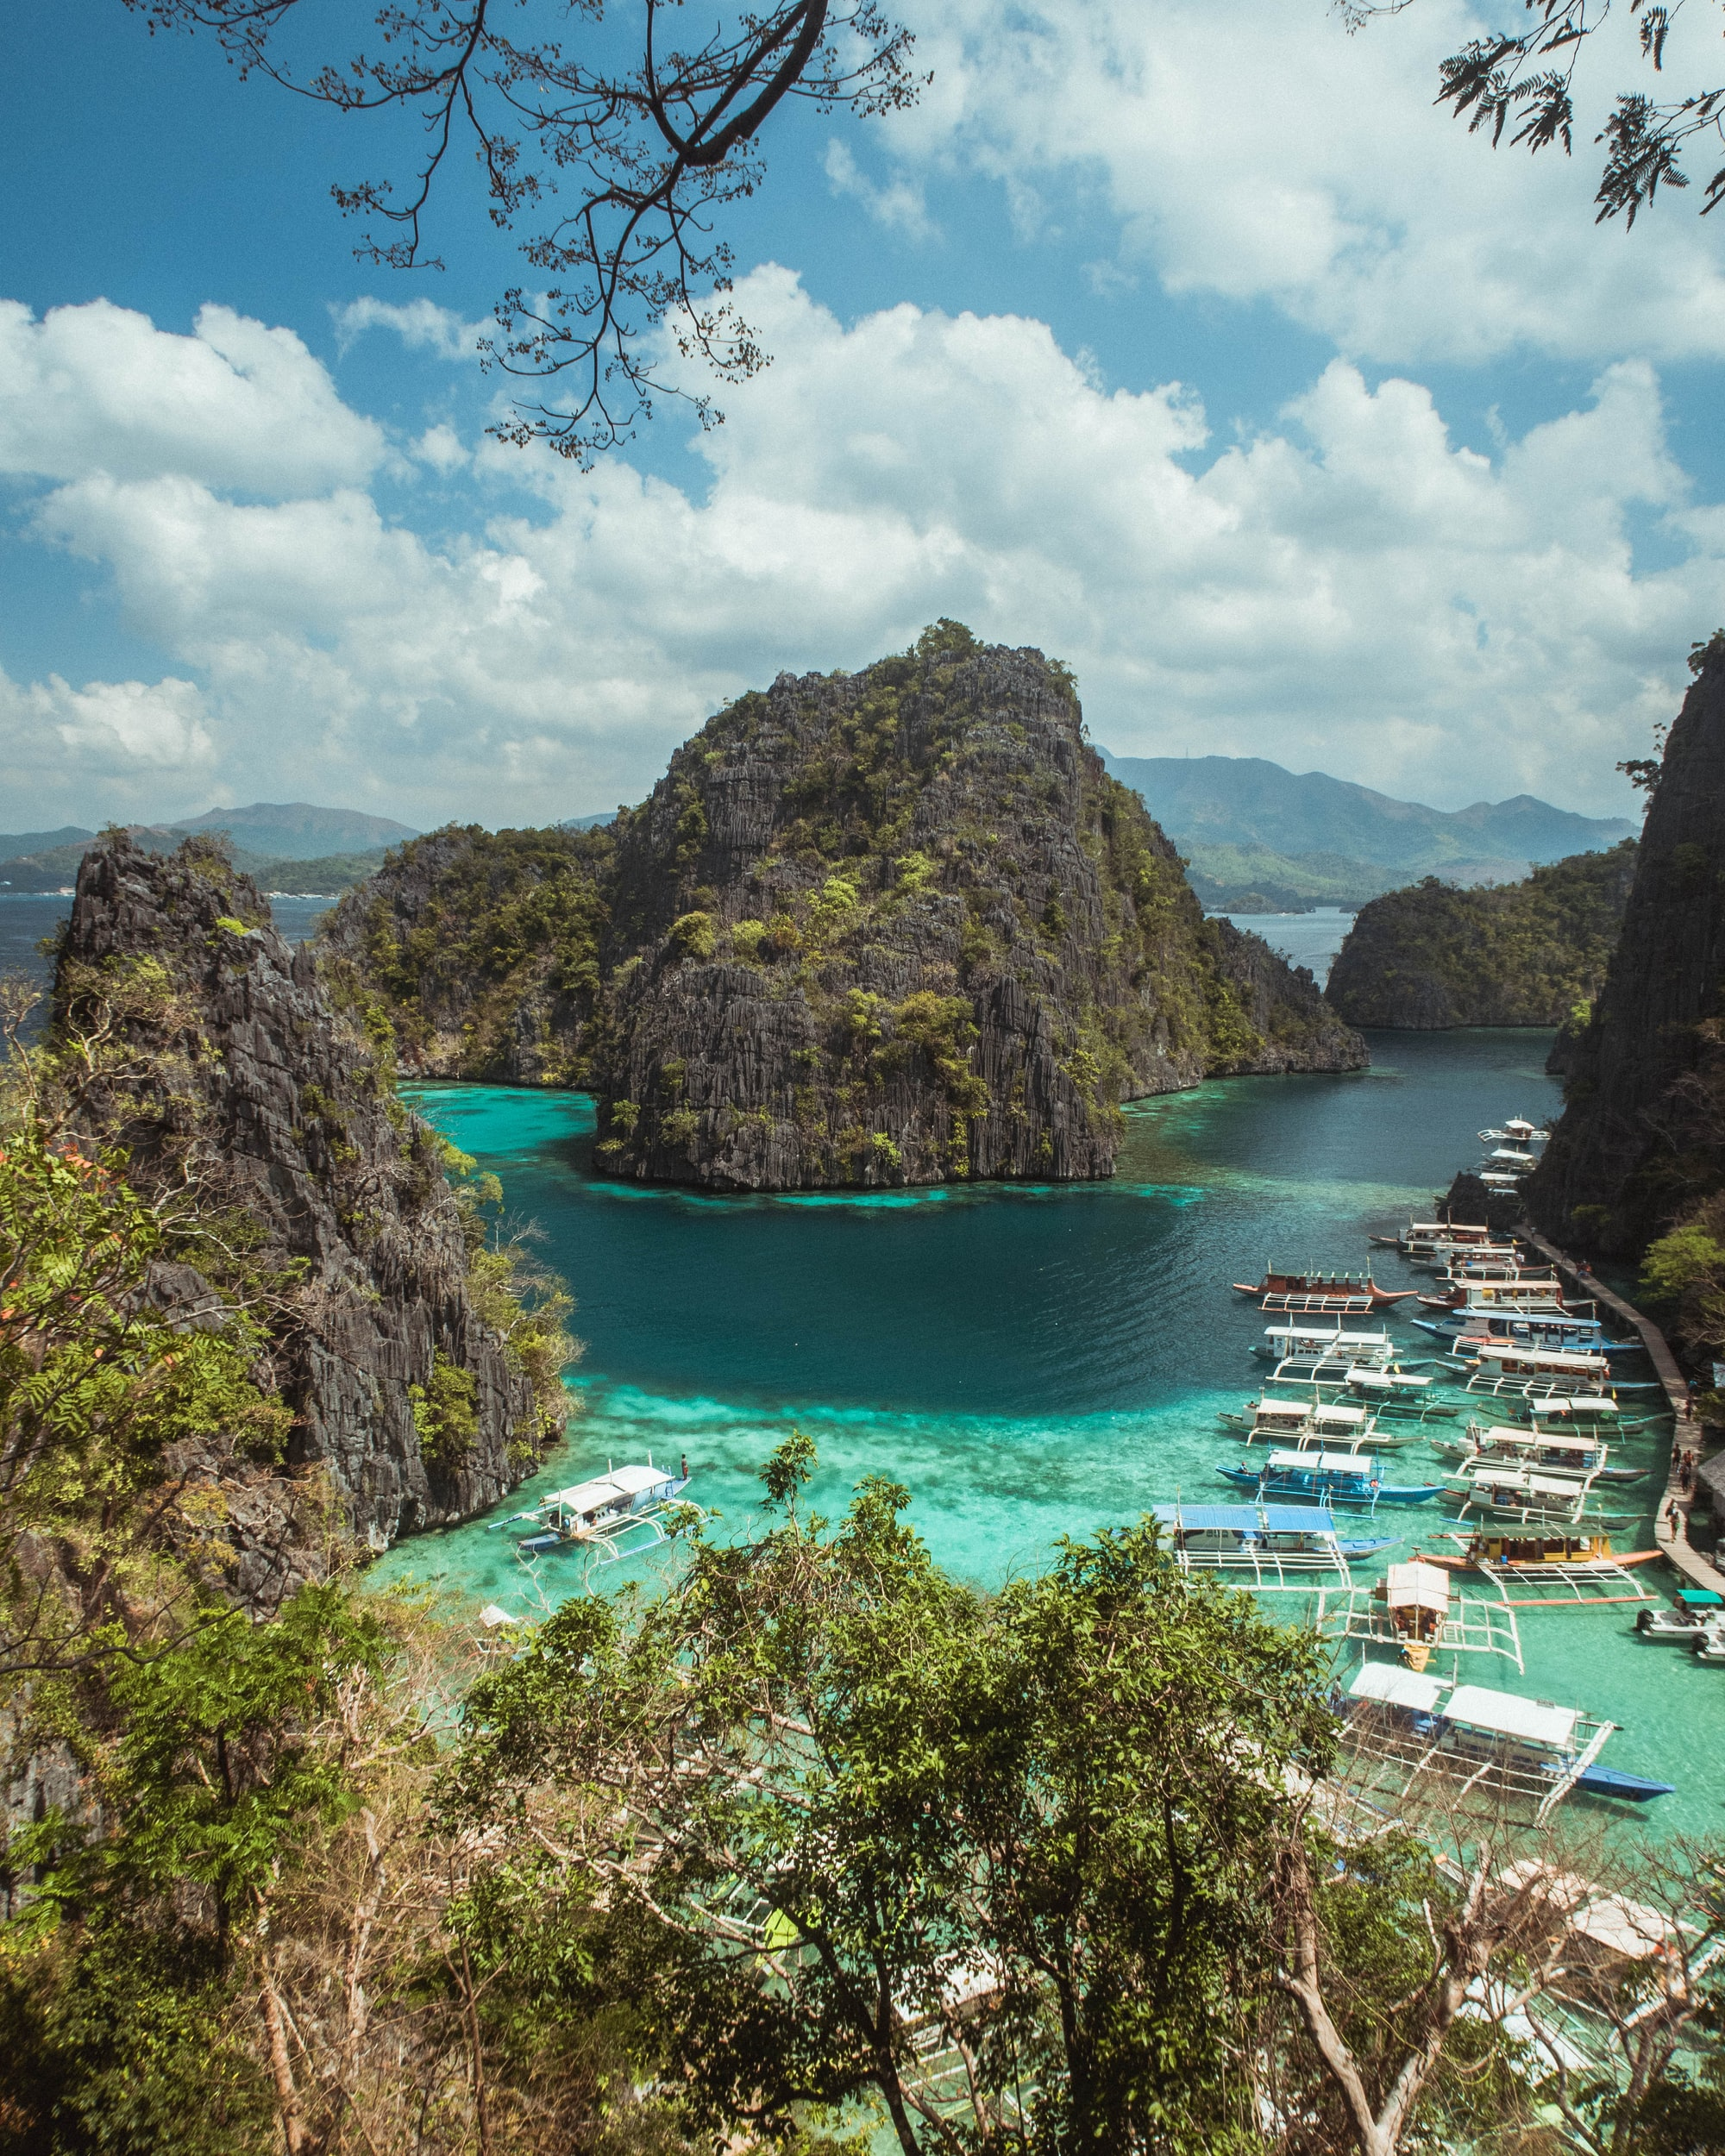 Looking over the water from a viewpoint near Kayangan Lake, Coron, Philippines.